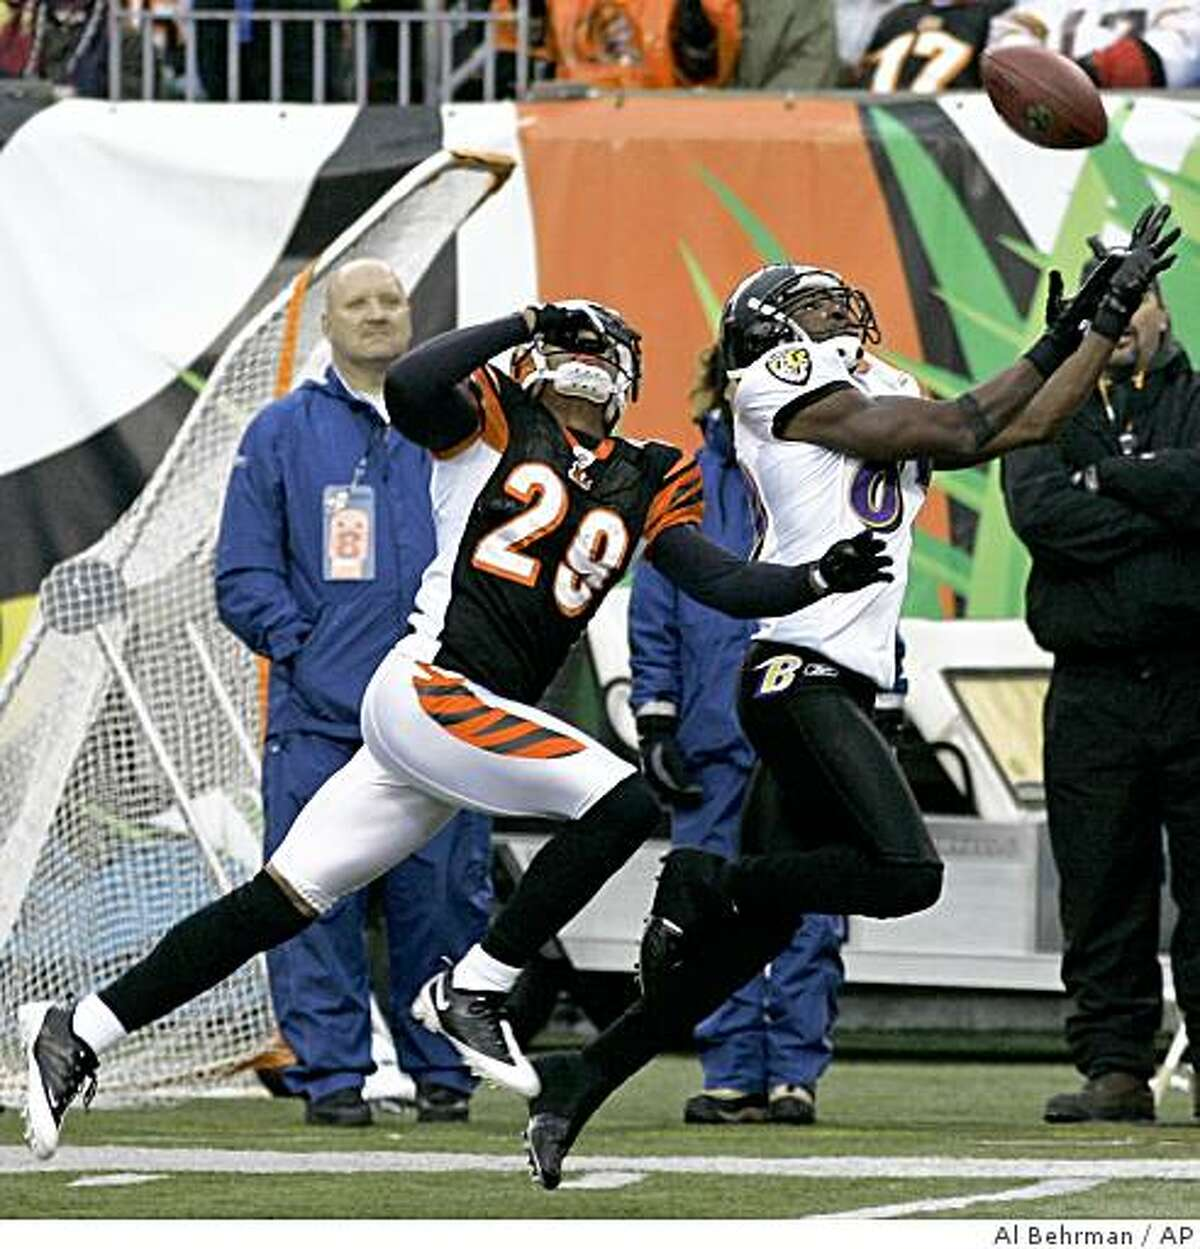 Baltimore Ravens receiver Mark Clayton (89) catches a 45-yard pass against Cincinnati Bengals cornerback Leon Hall (29) in the first quarter.